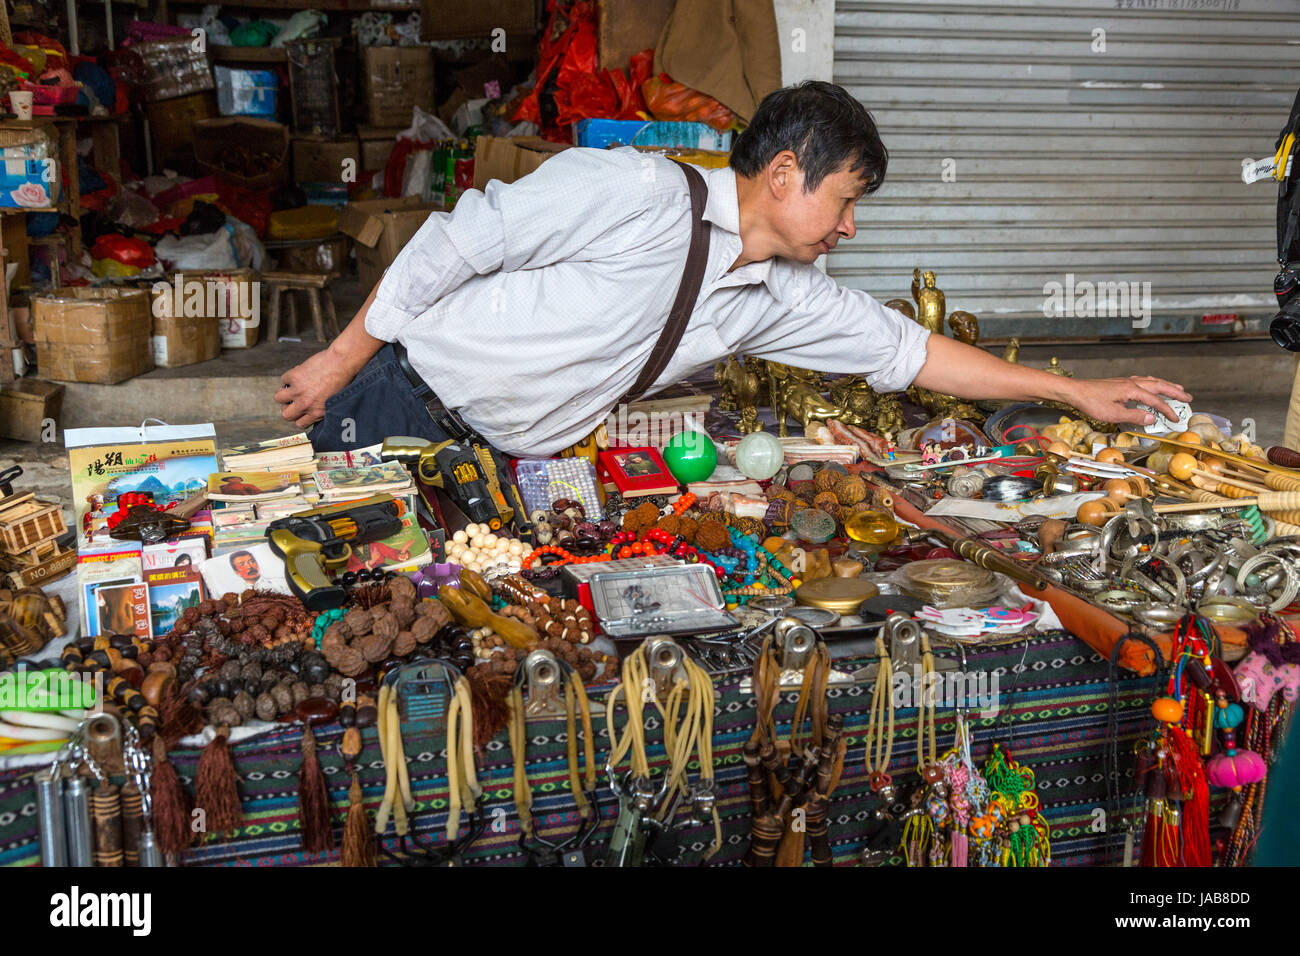 Yangshuo, China.  Vendor of Assorted Souvenirs, Gifts, Bracelets, and Sundry Items. Stock Photo